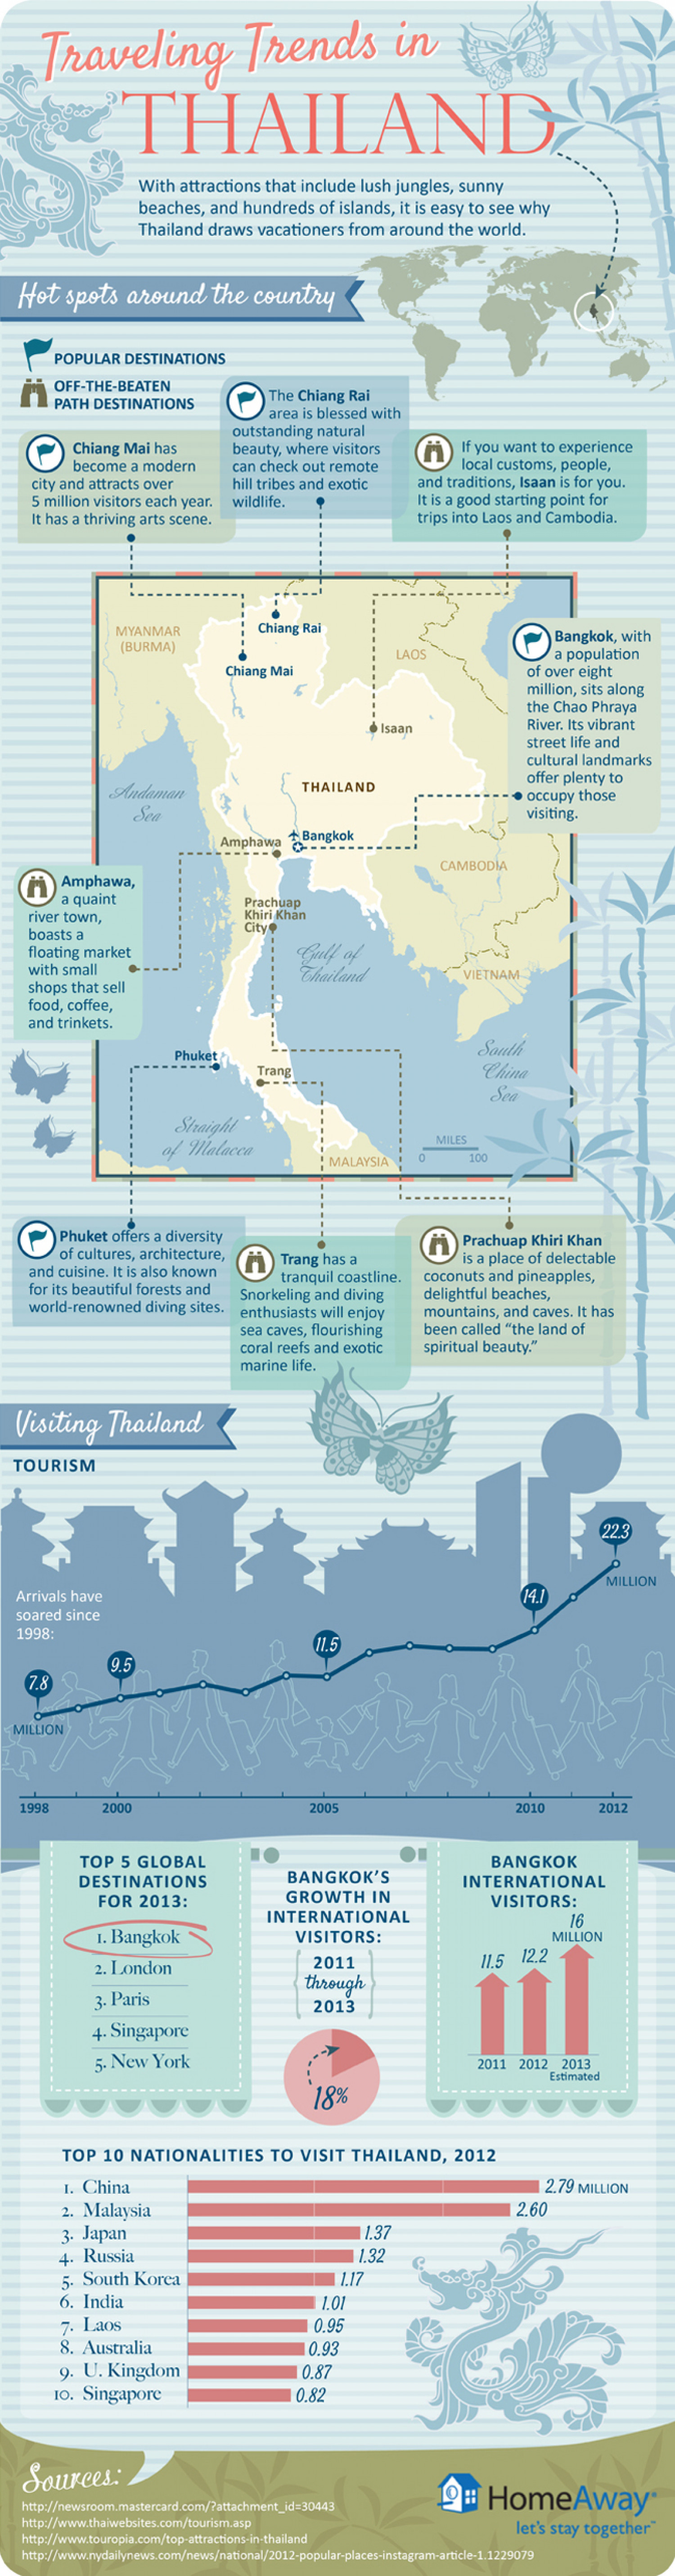 Travel Trends in Thailand Infographic